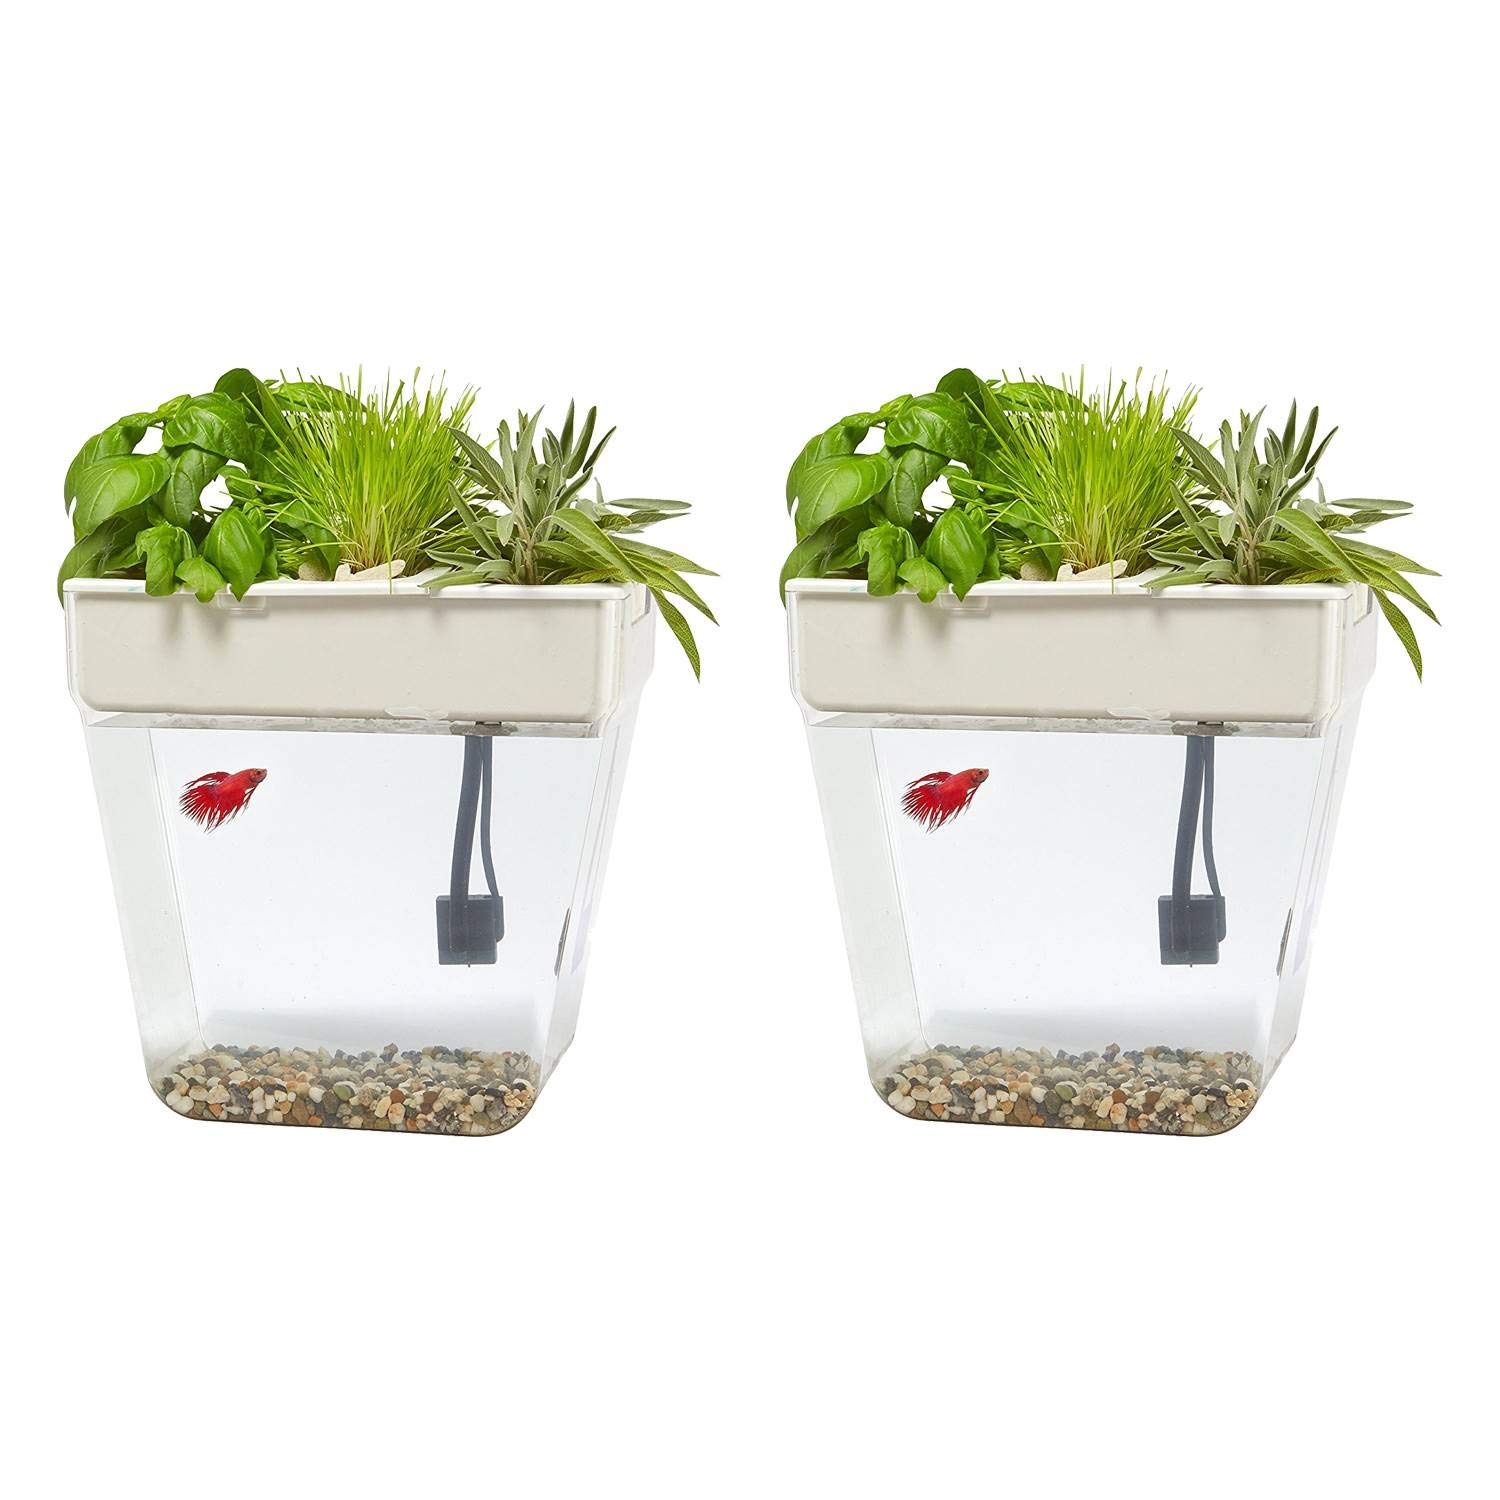 Back to the Roots 3 Gal. Self-Cleaning Aquaponic Water Garden Fish Tank, 2 Pack by Back to the Roots